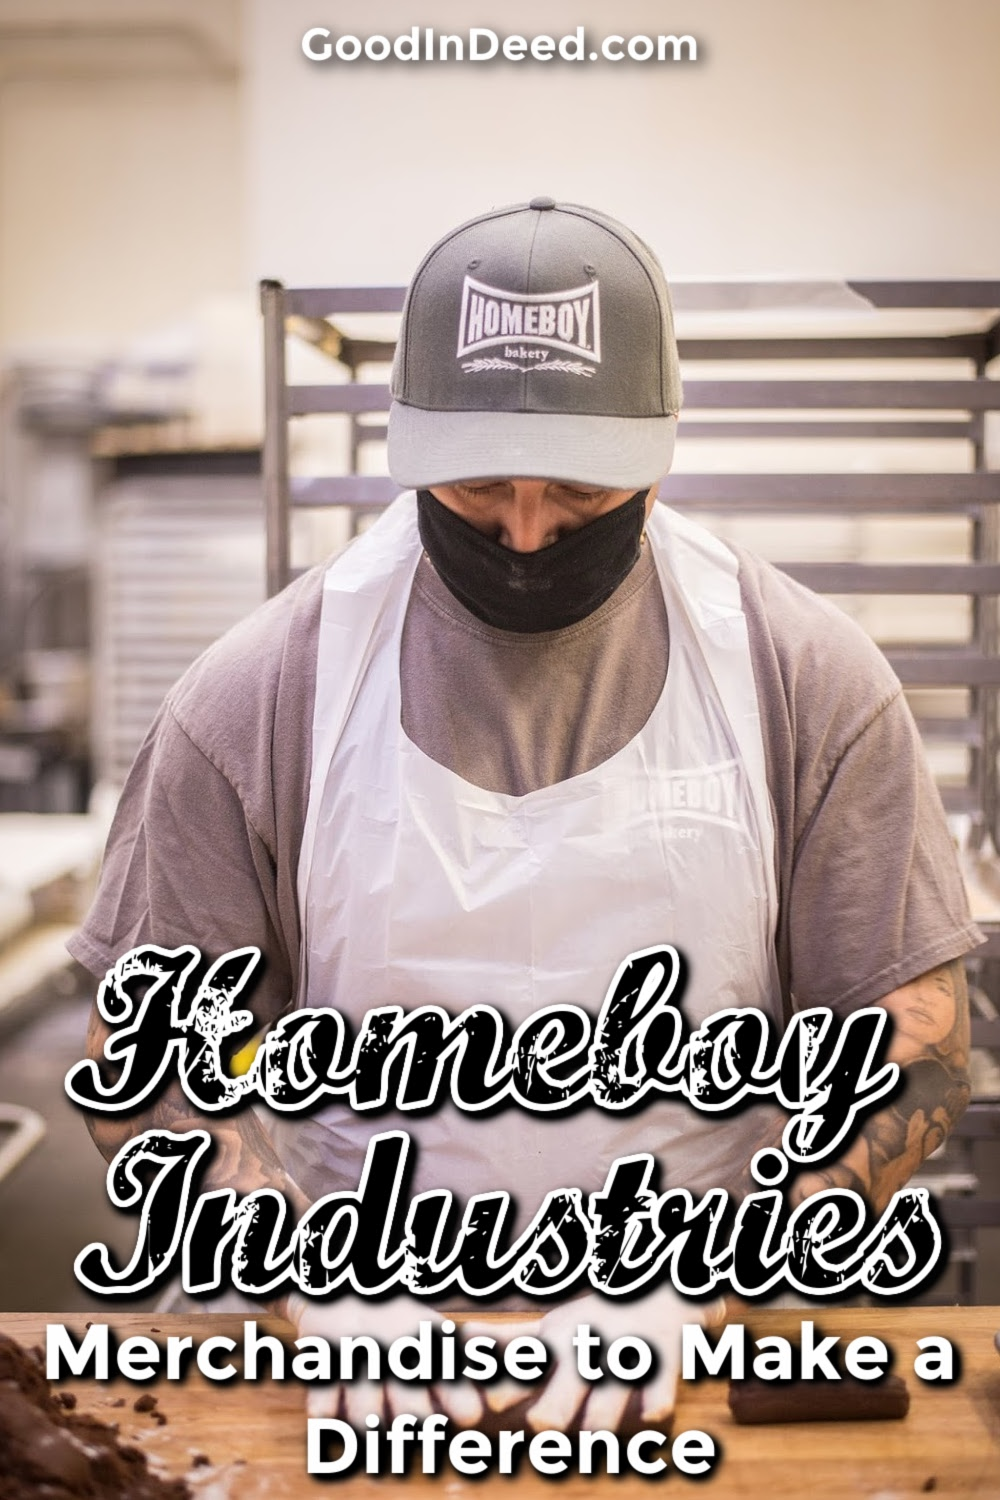 You can buy yourself some Homeboys Industries merchandise and food to help give people a chance to show the world they can be better.